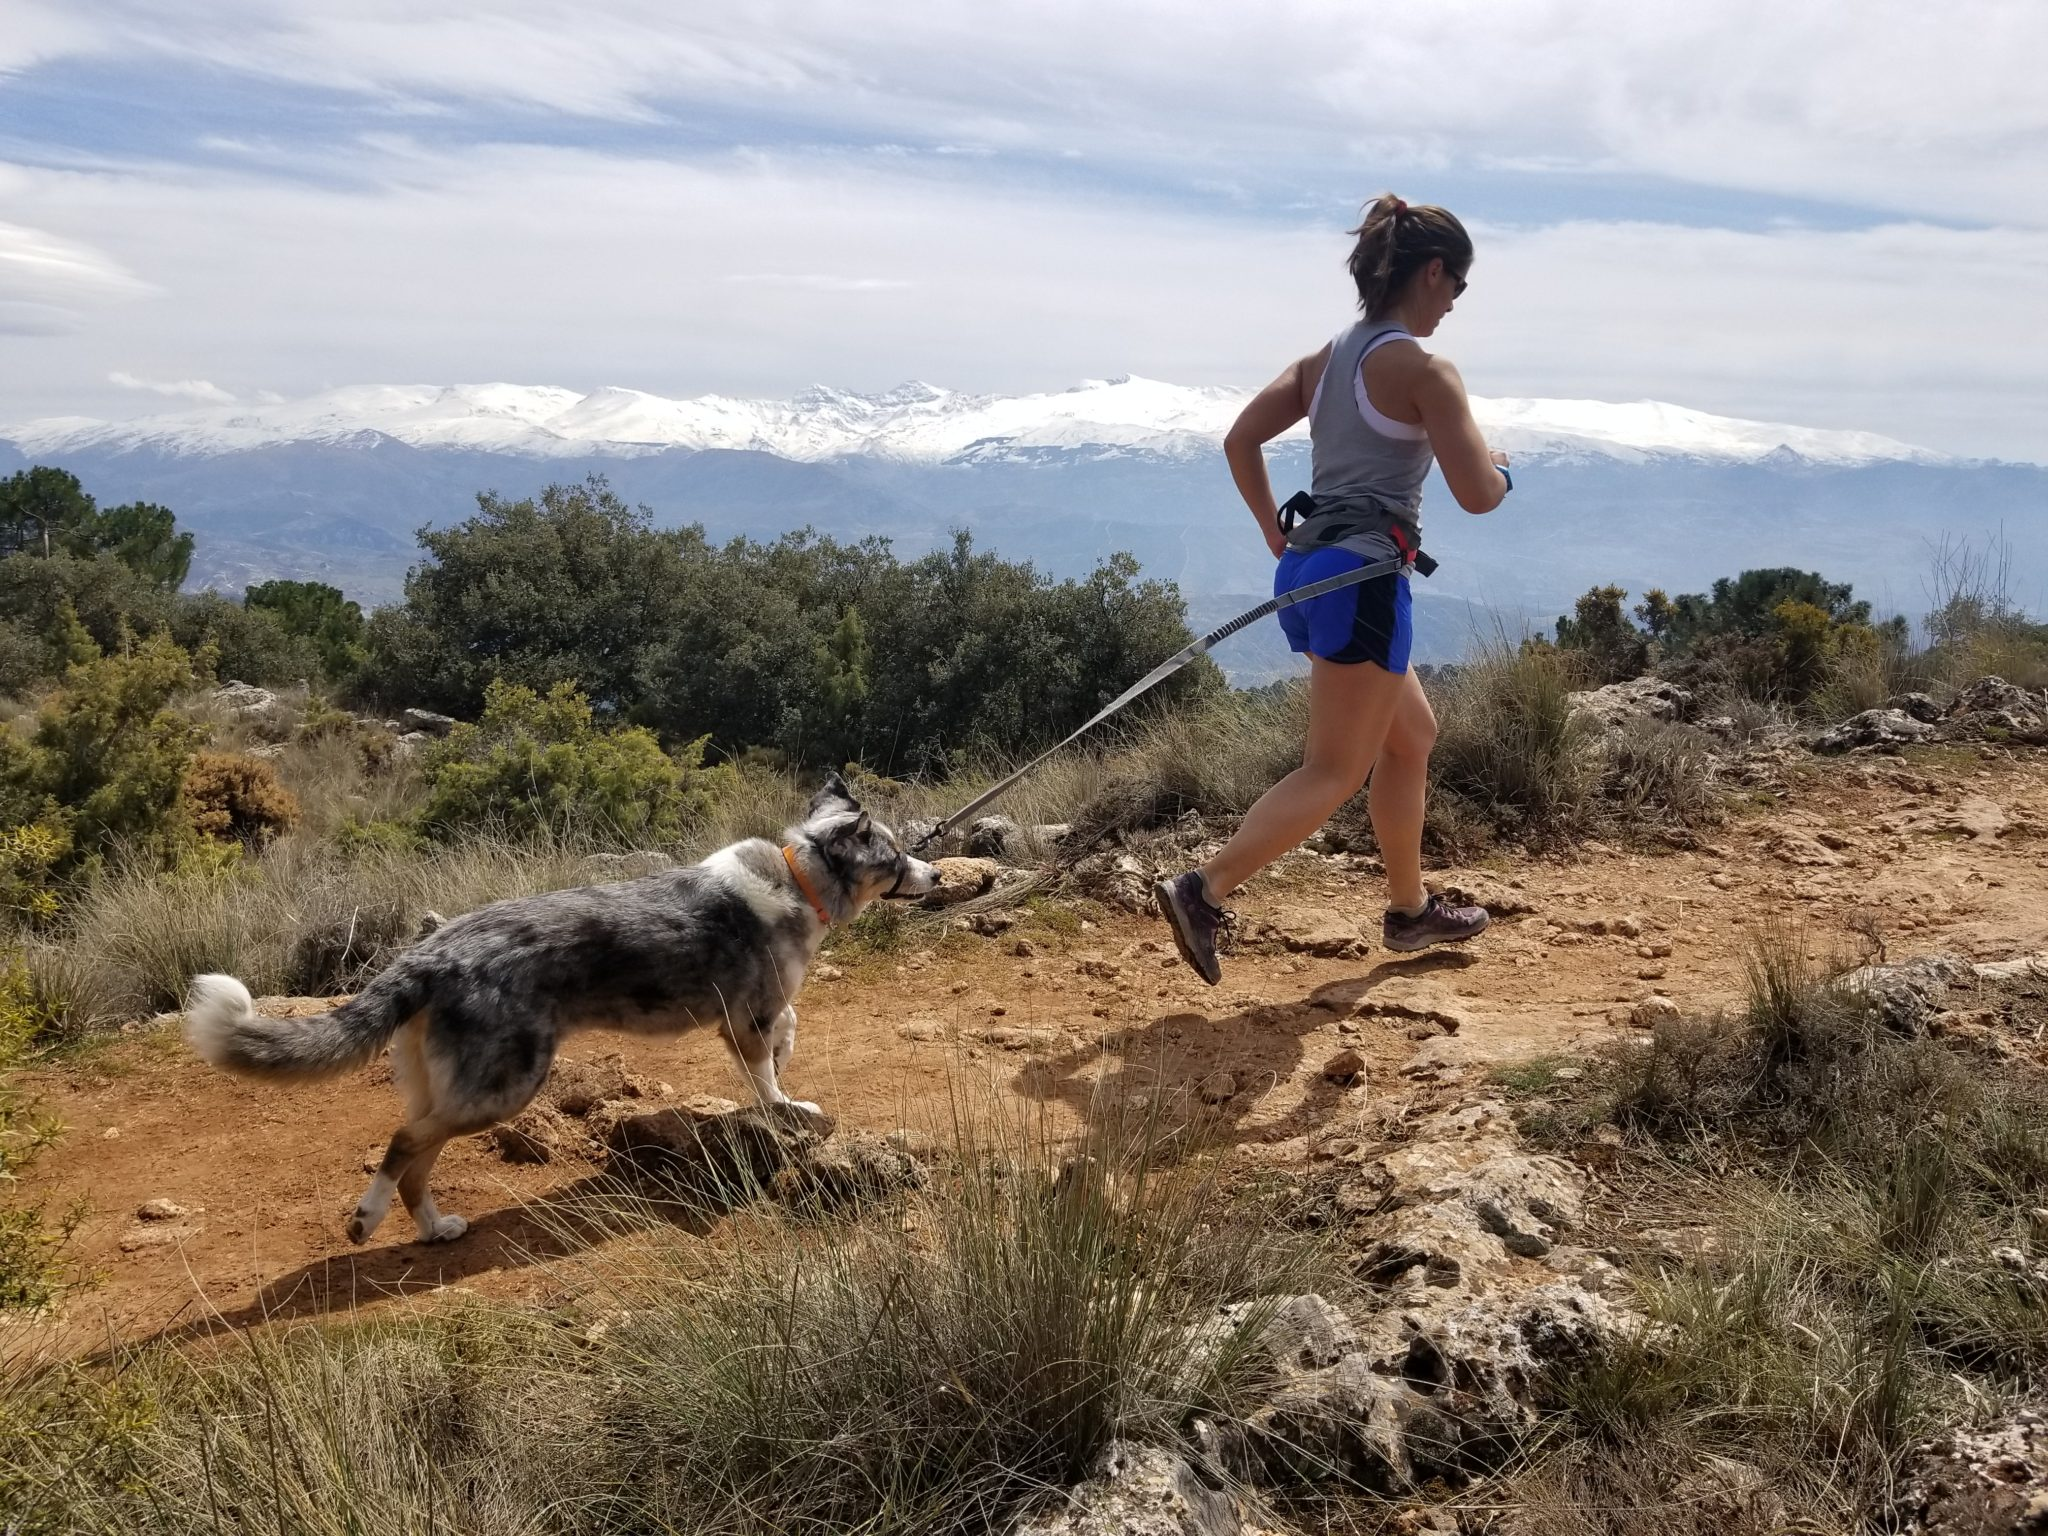 These 11 dog breeds make the best running partners. Whether you go short distances or run ultra marathons, these are our picks for the best dog breeds for running.